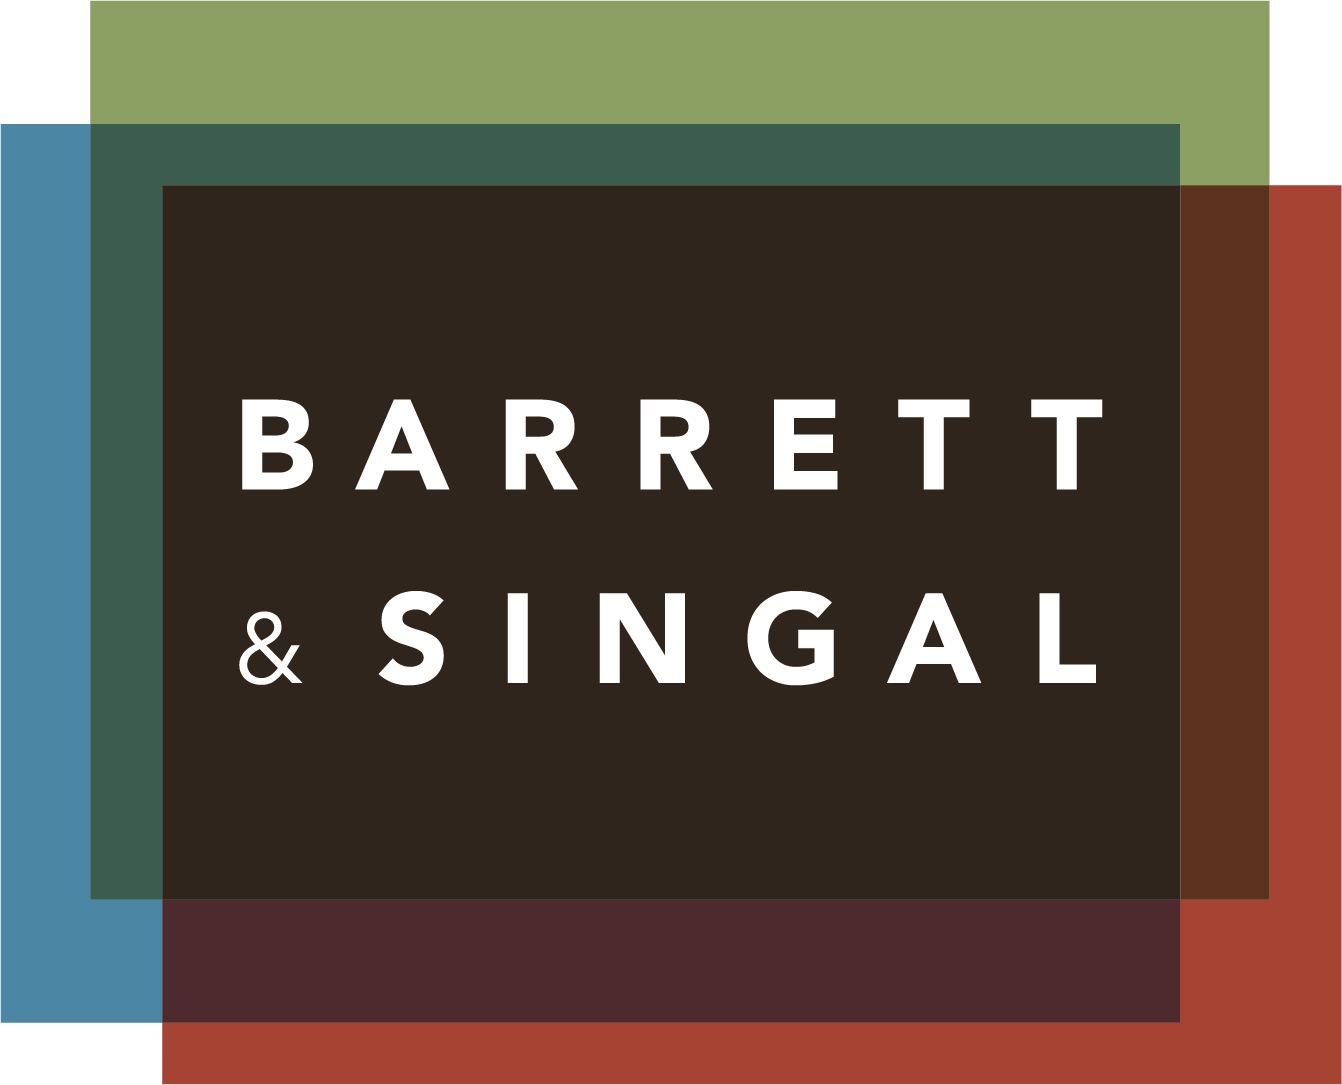 Barrett & Singal - Research Misconduct Blog